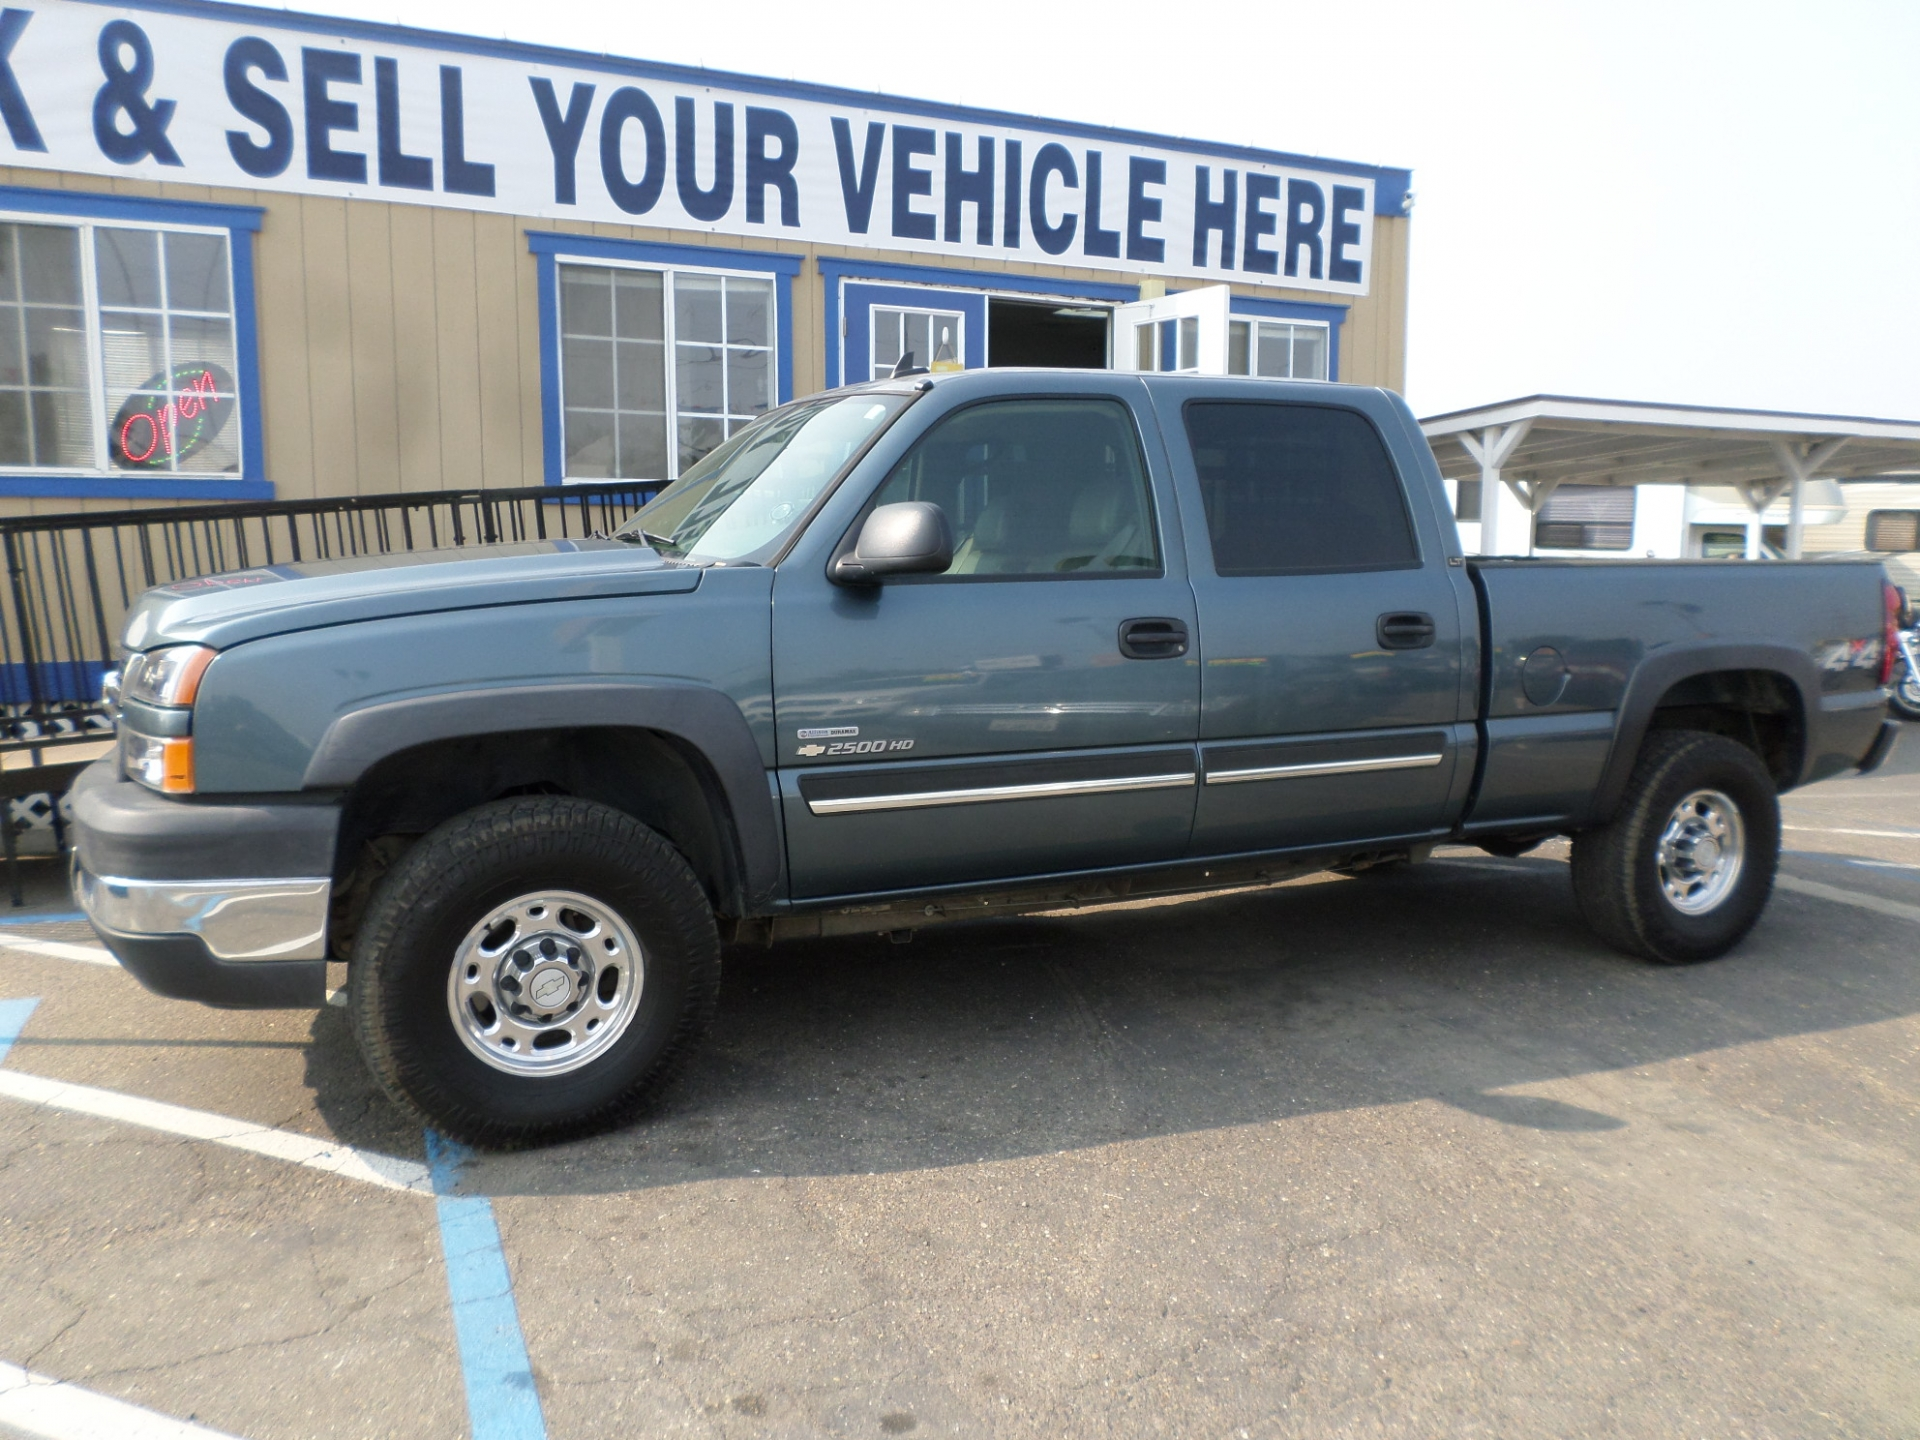 Truck For Sale 2006 Chevrolet Silverado Lt 2500 Hd Crew Cab Duramax Diesel 4x4 Pickup Truck In Lodi Stockton Ca Lodi Park And Sell